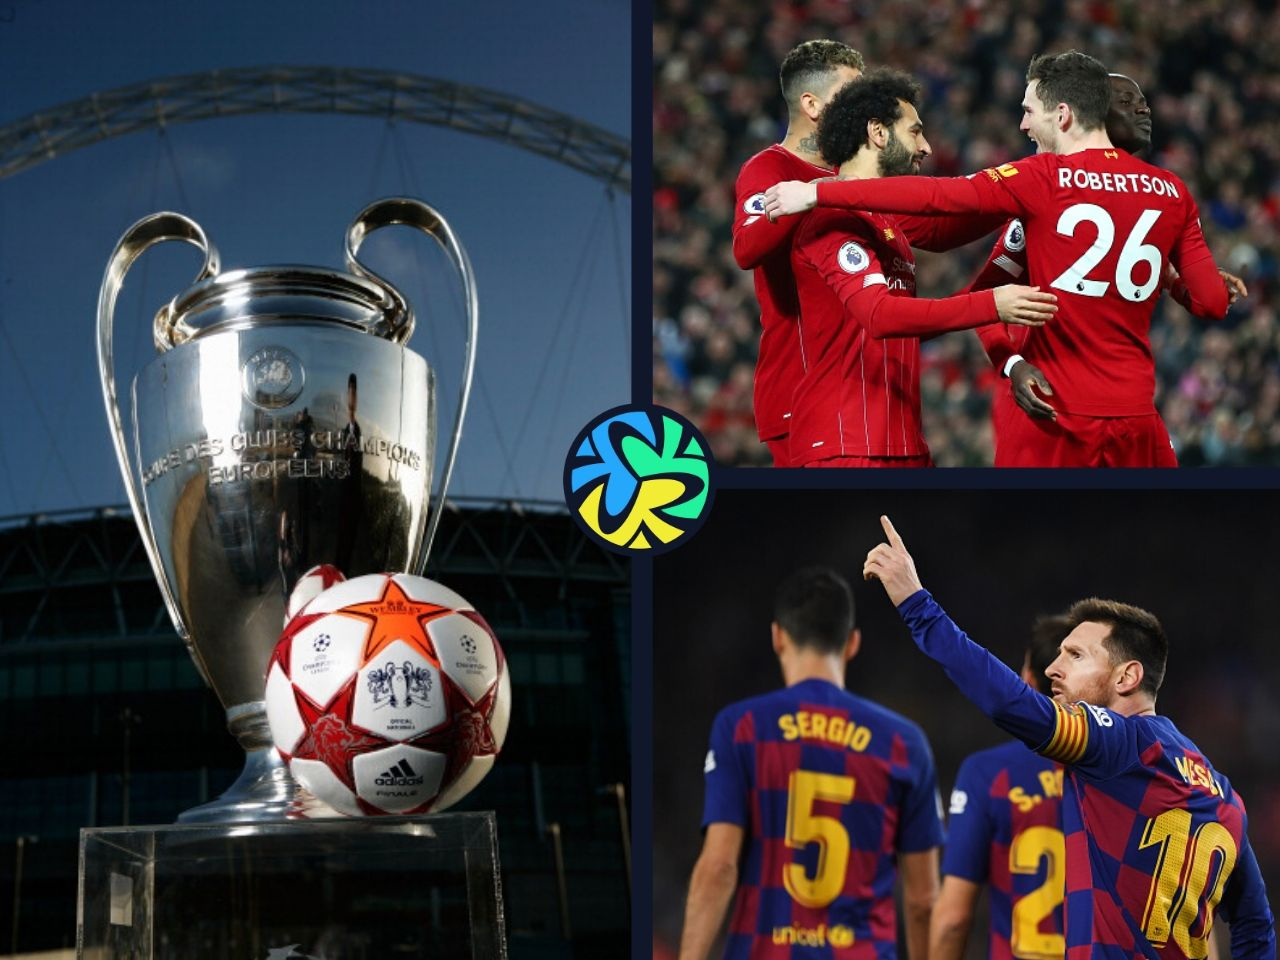 Top 5 favourites to win the UEFA Champions League